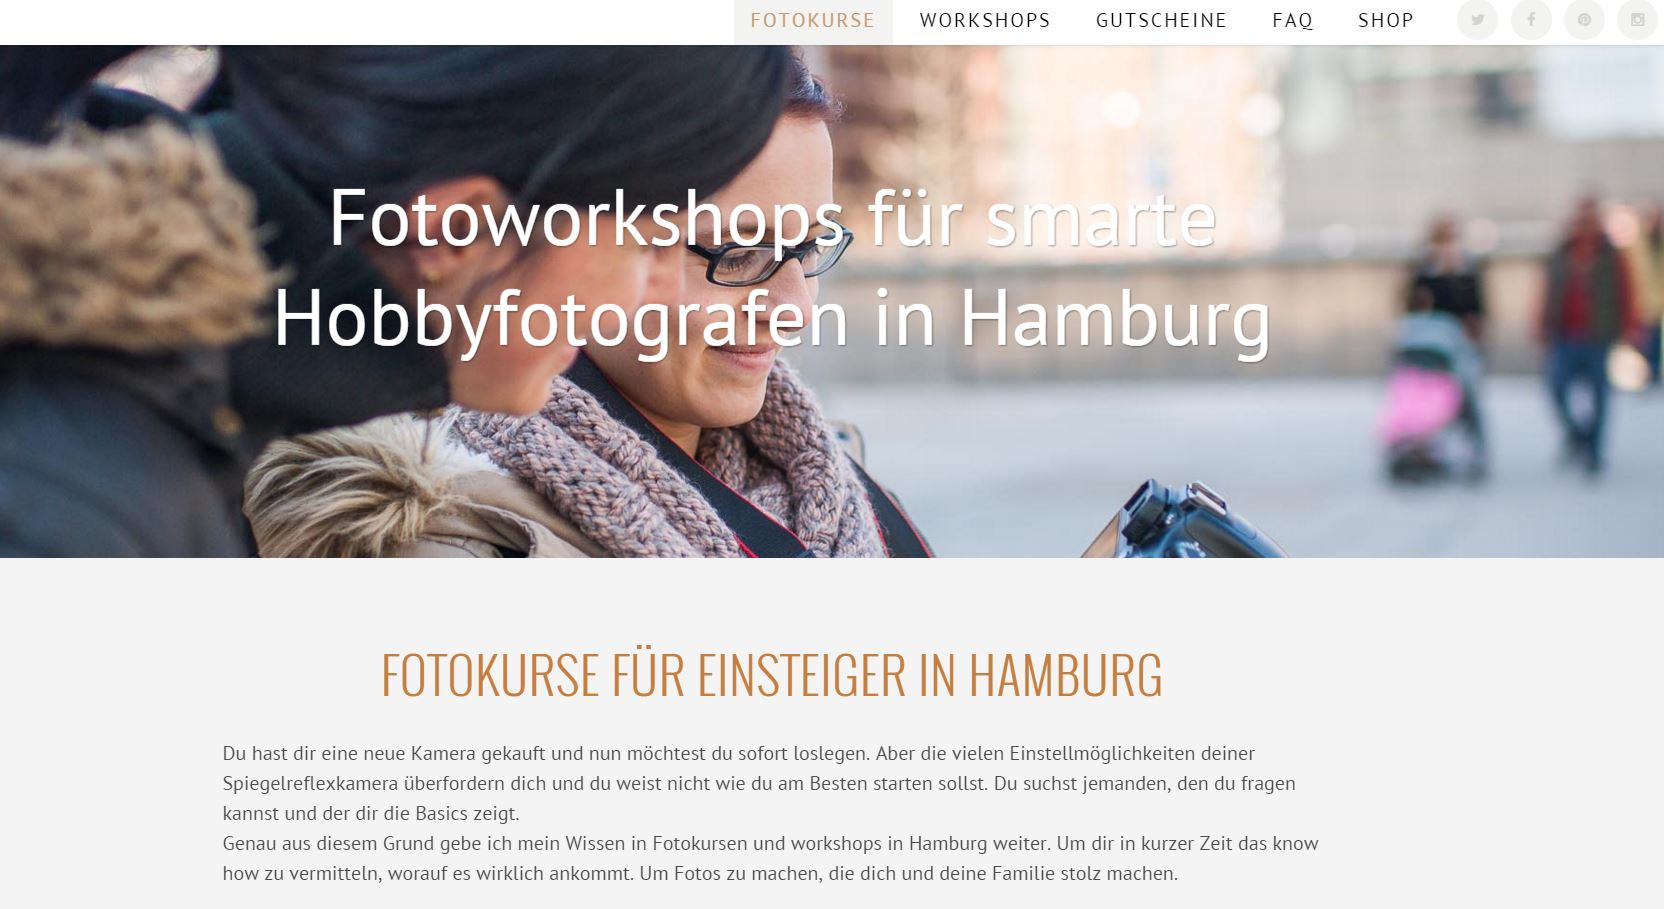 Fotokurse in Hamburg